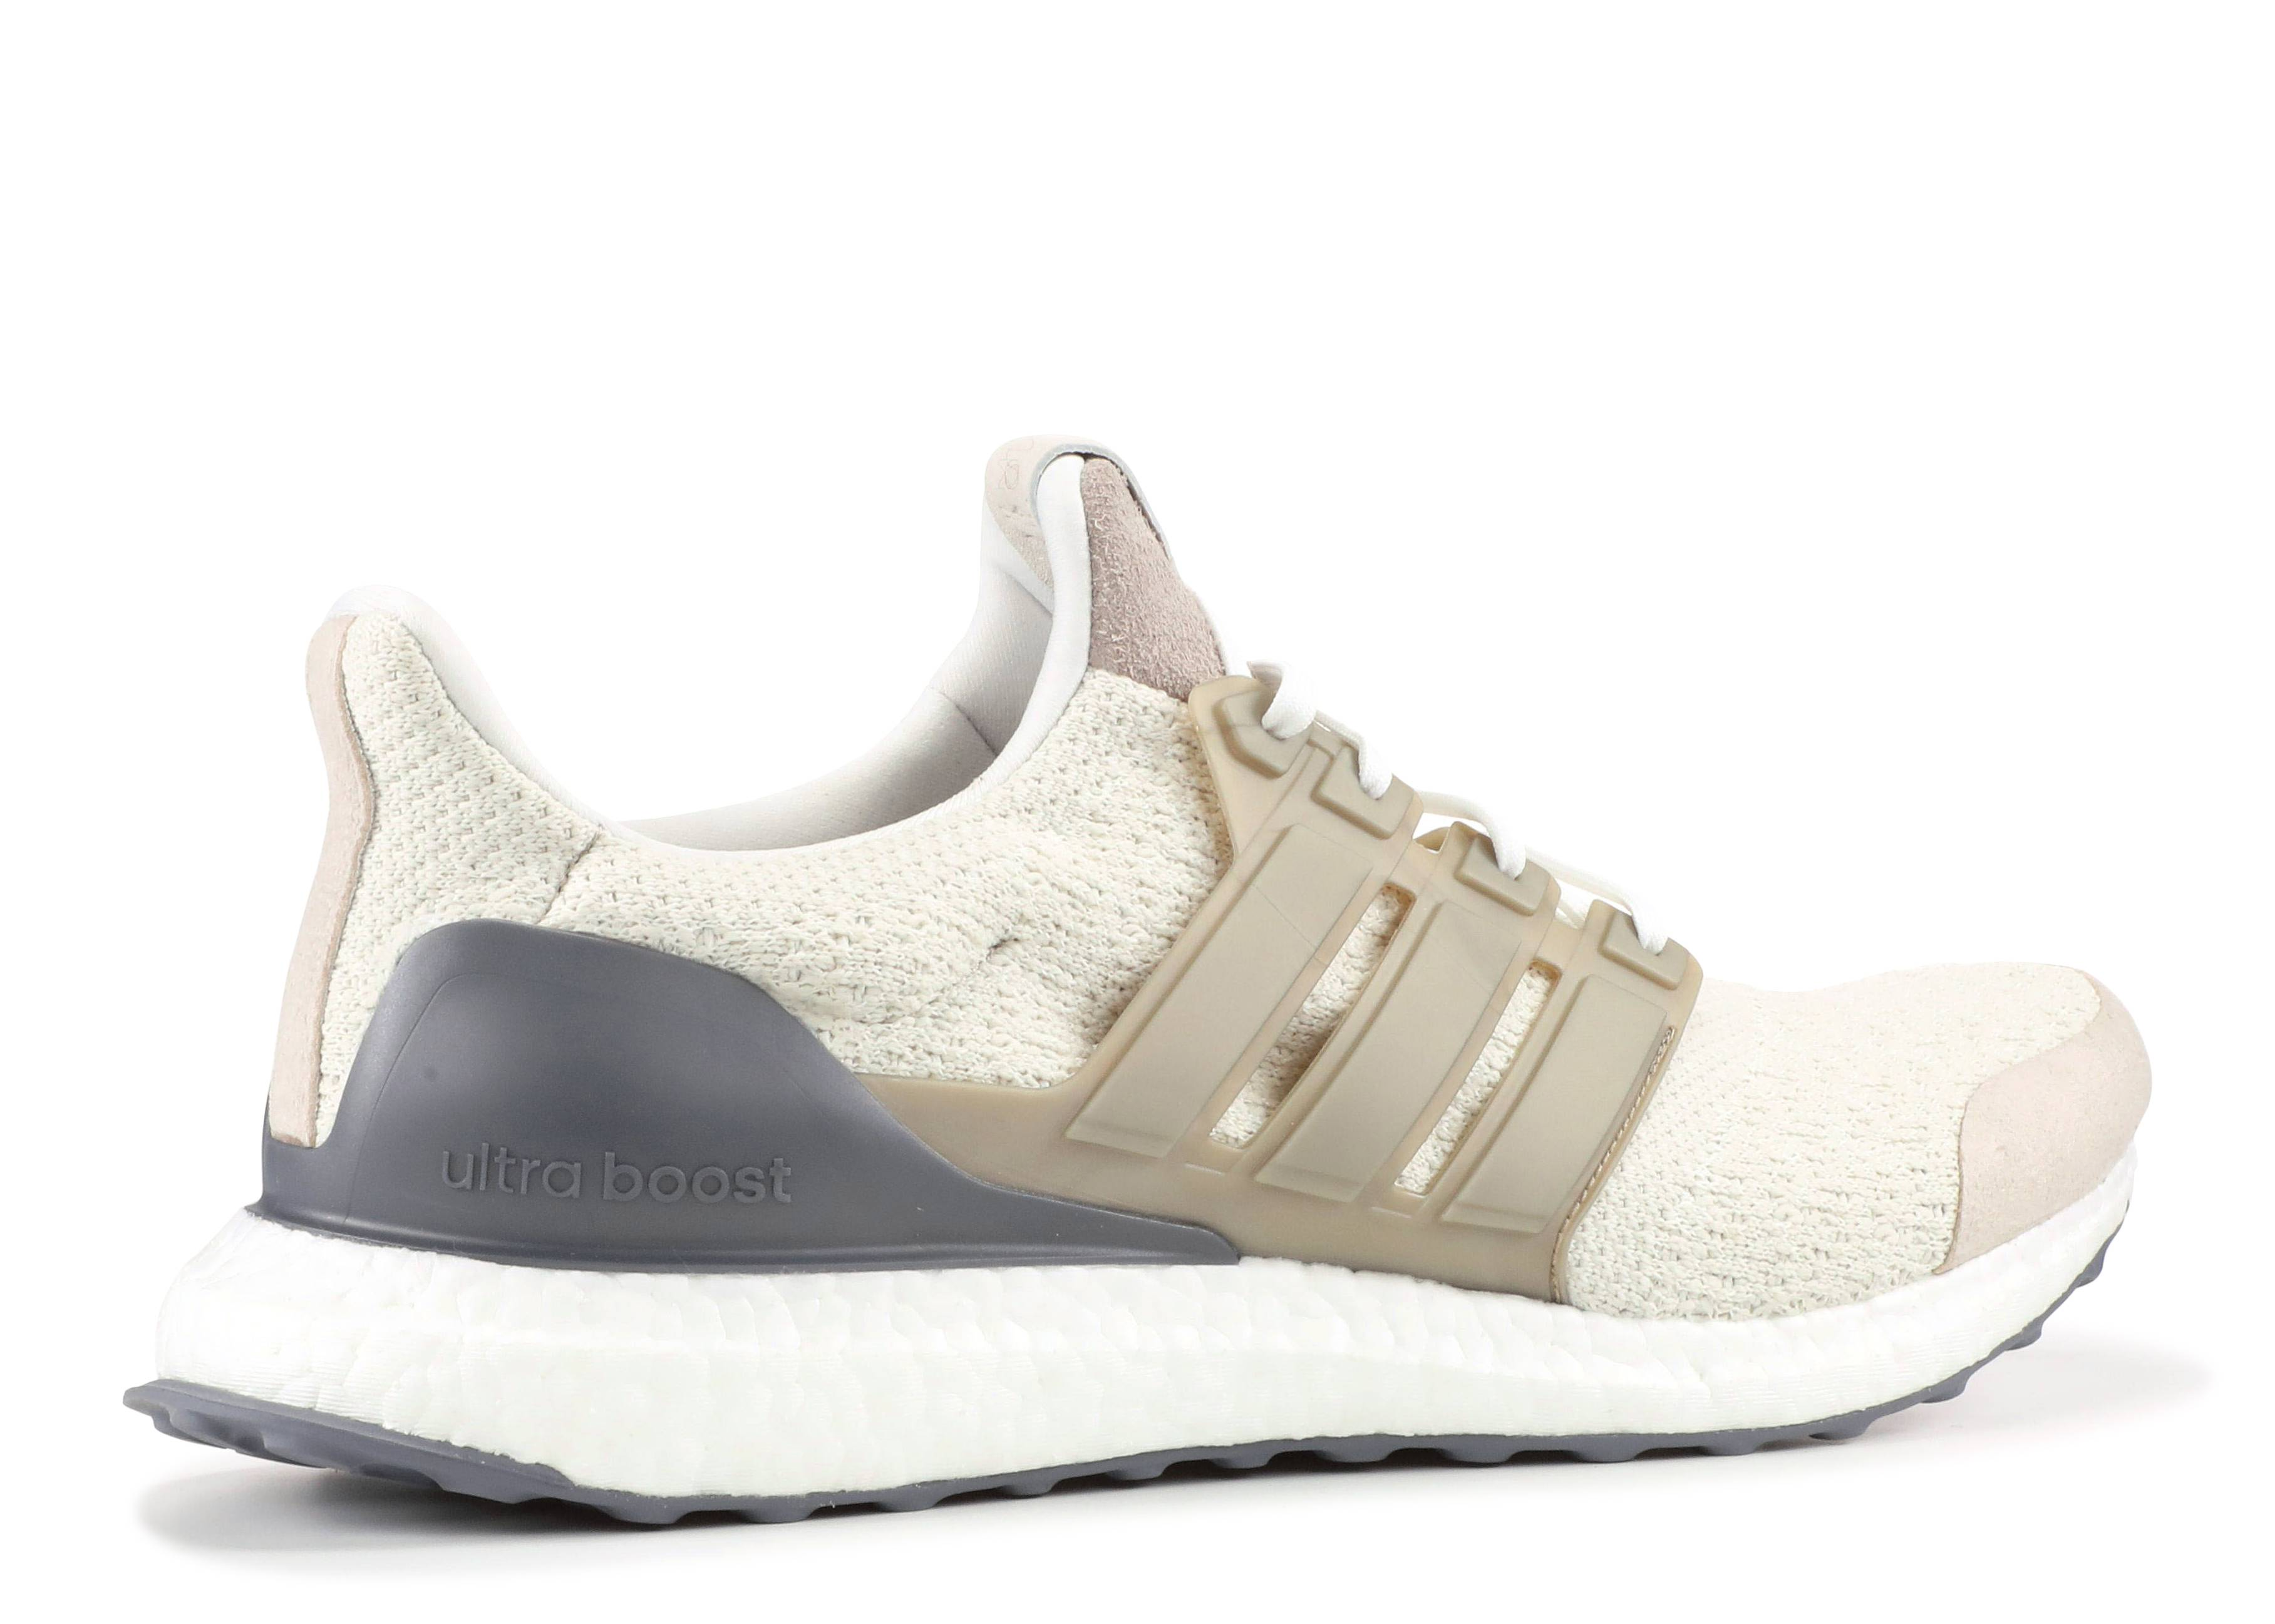 check out 14fbf 74ff0 ULTRABOOST LUX - Adidas - DB0338 - vintage white chocolate brown   Flight  Club